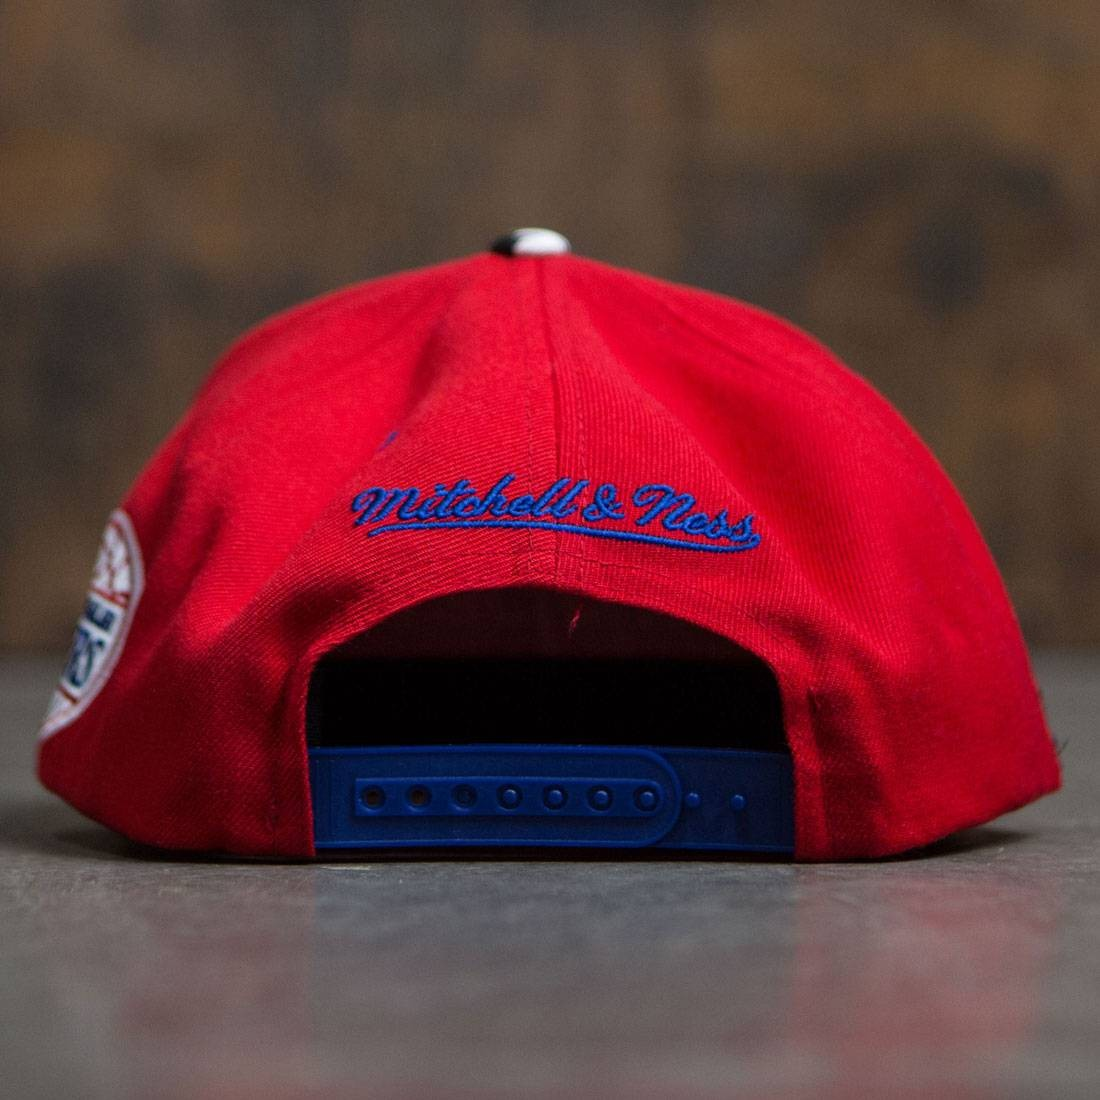 BAIT x NBA x Mitchell And Ness Los Angeles Clippers STA3 Wool Snapback Cap red royalBAIT x NBA x Mitchell And Ness Los Angeles Clippers STA3 Wool Snapback Cap (red / royal) - 웹